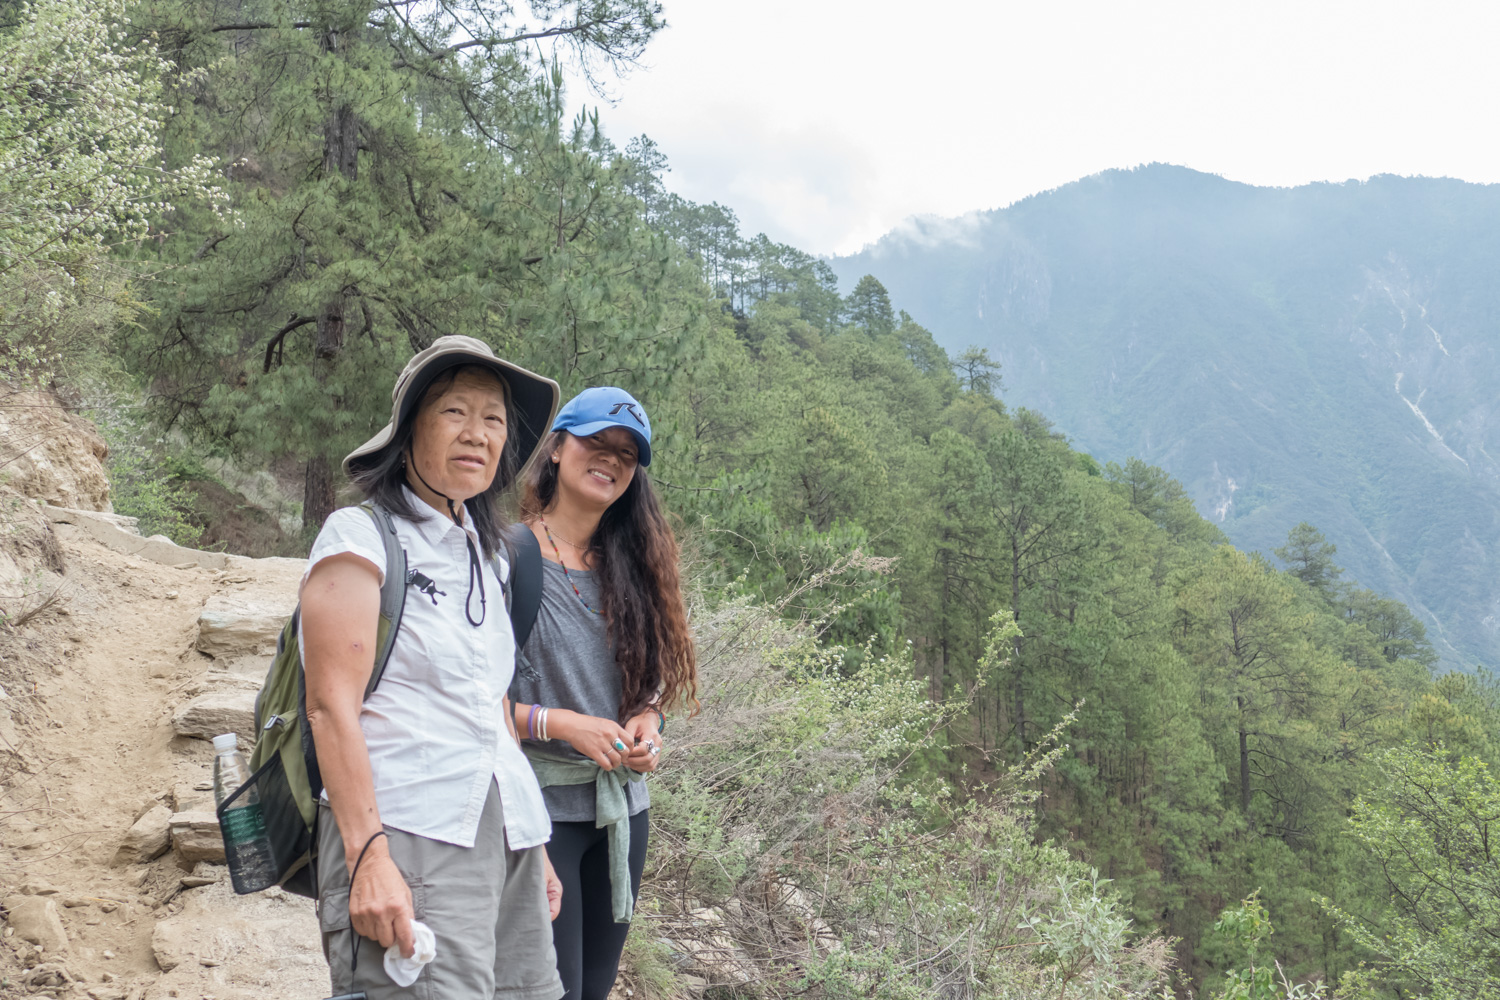 Lil with our guide Pema on the hike